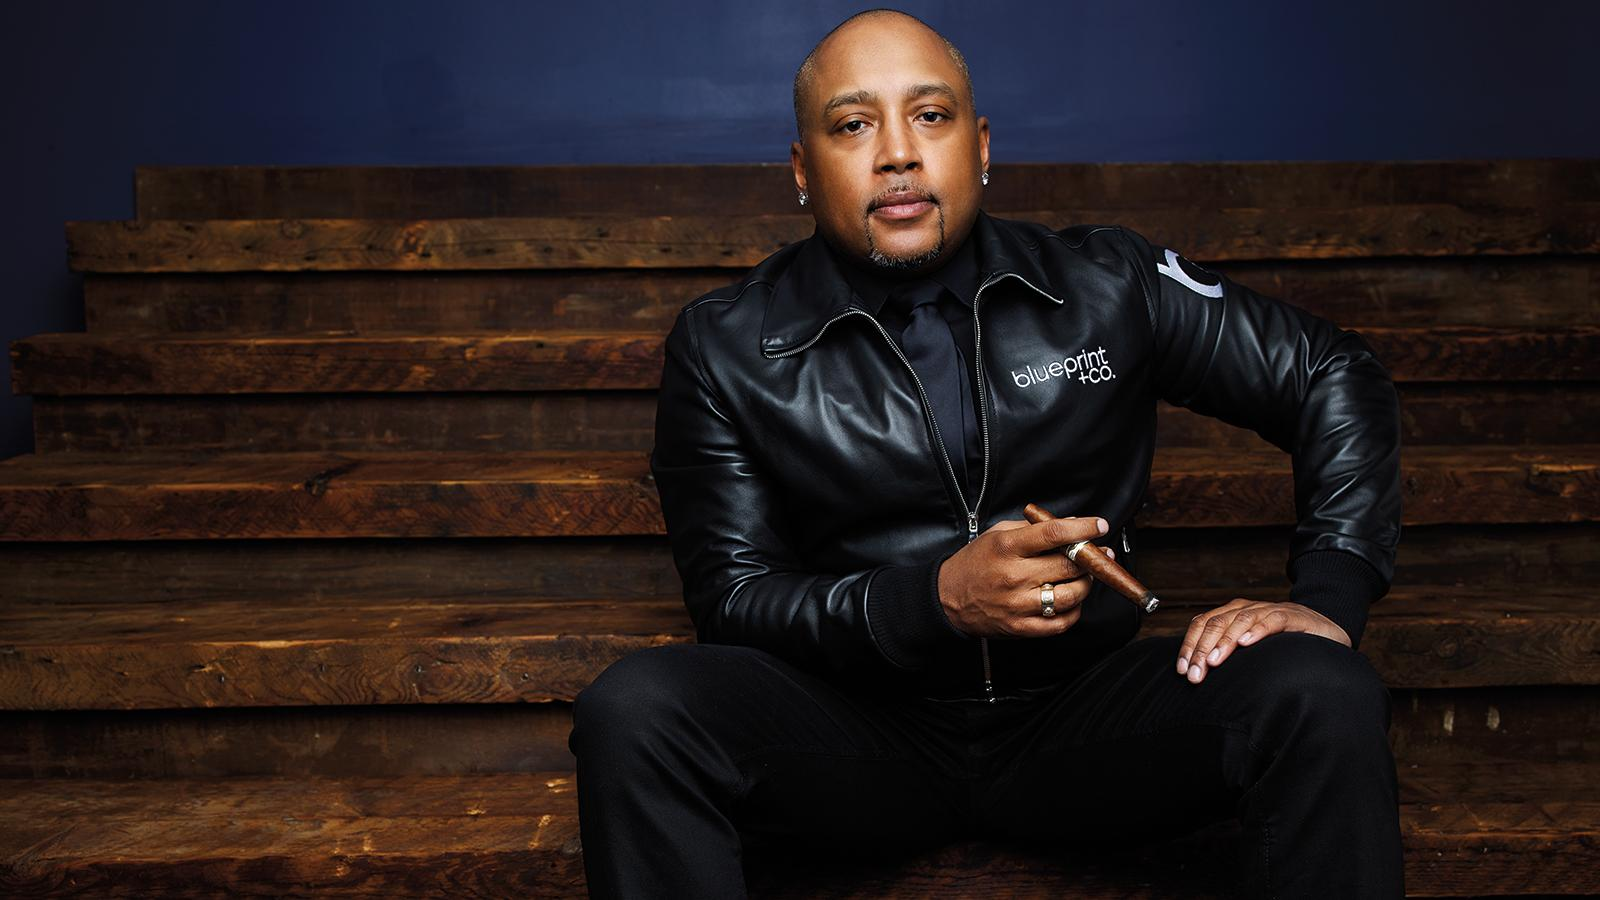 Daymond John smoking a cigarette (or weed)